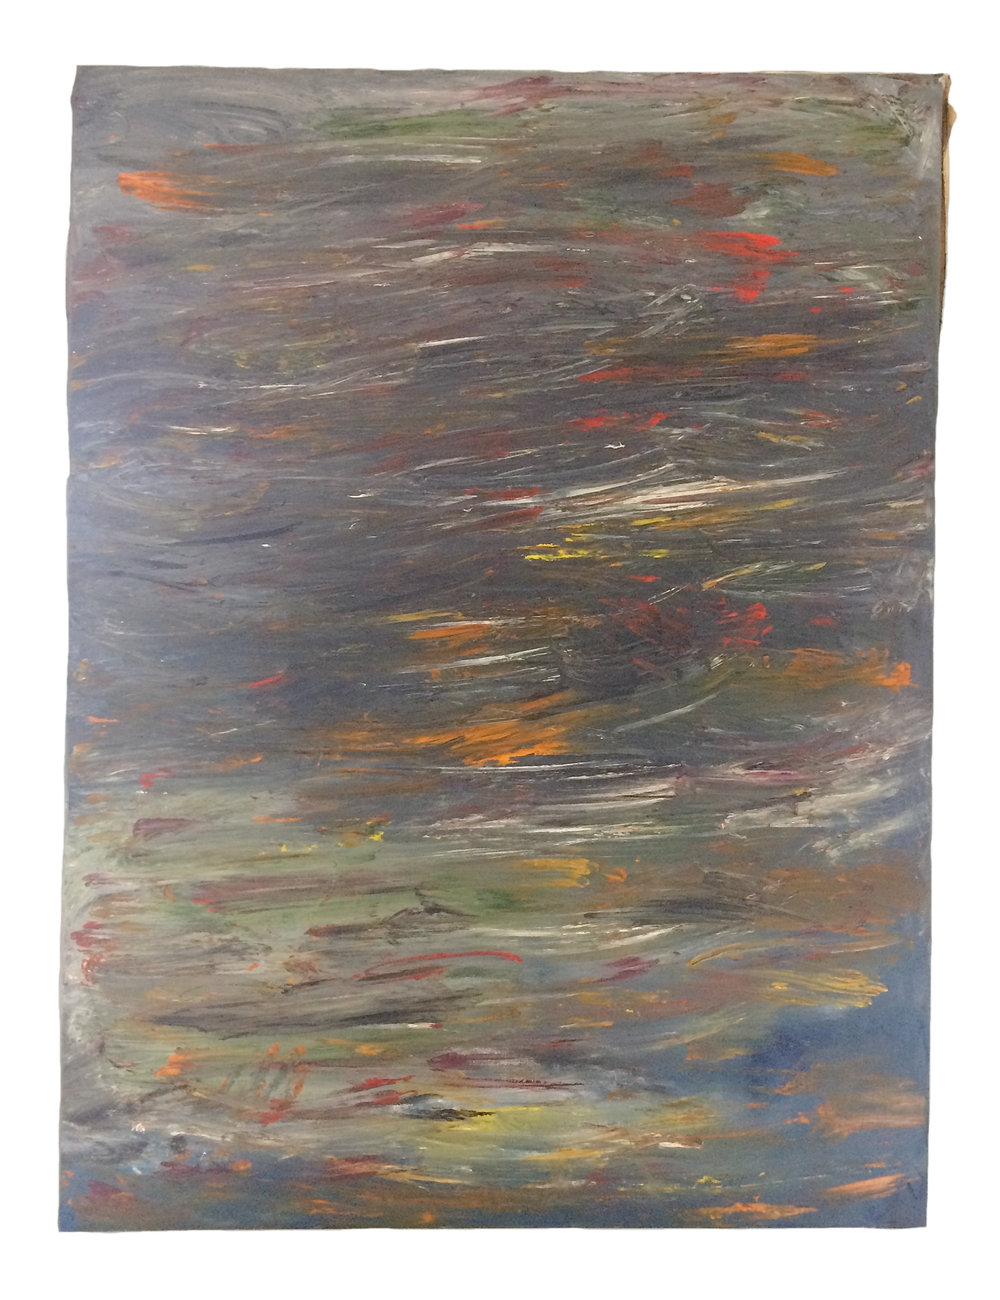 Sway    Oil on canvas  48 x 36 inches